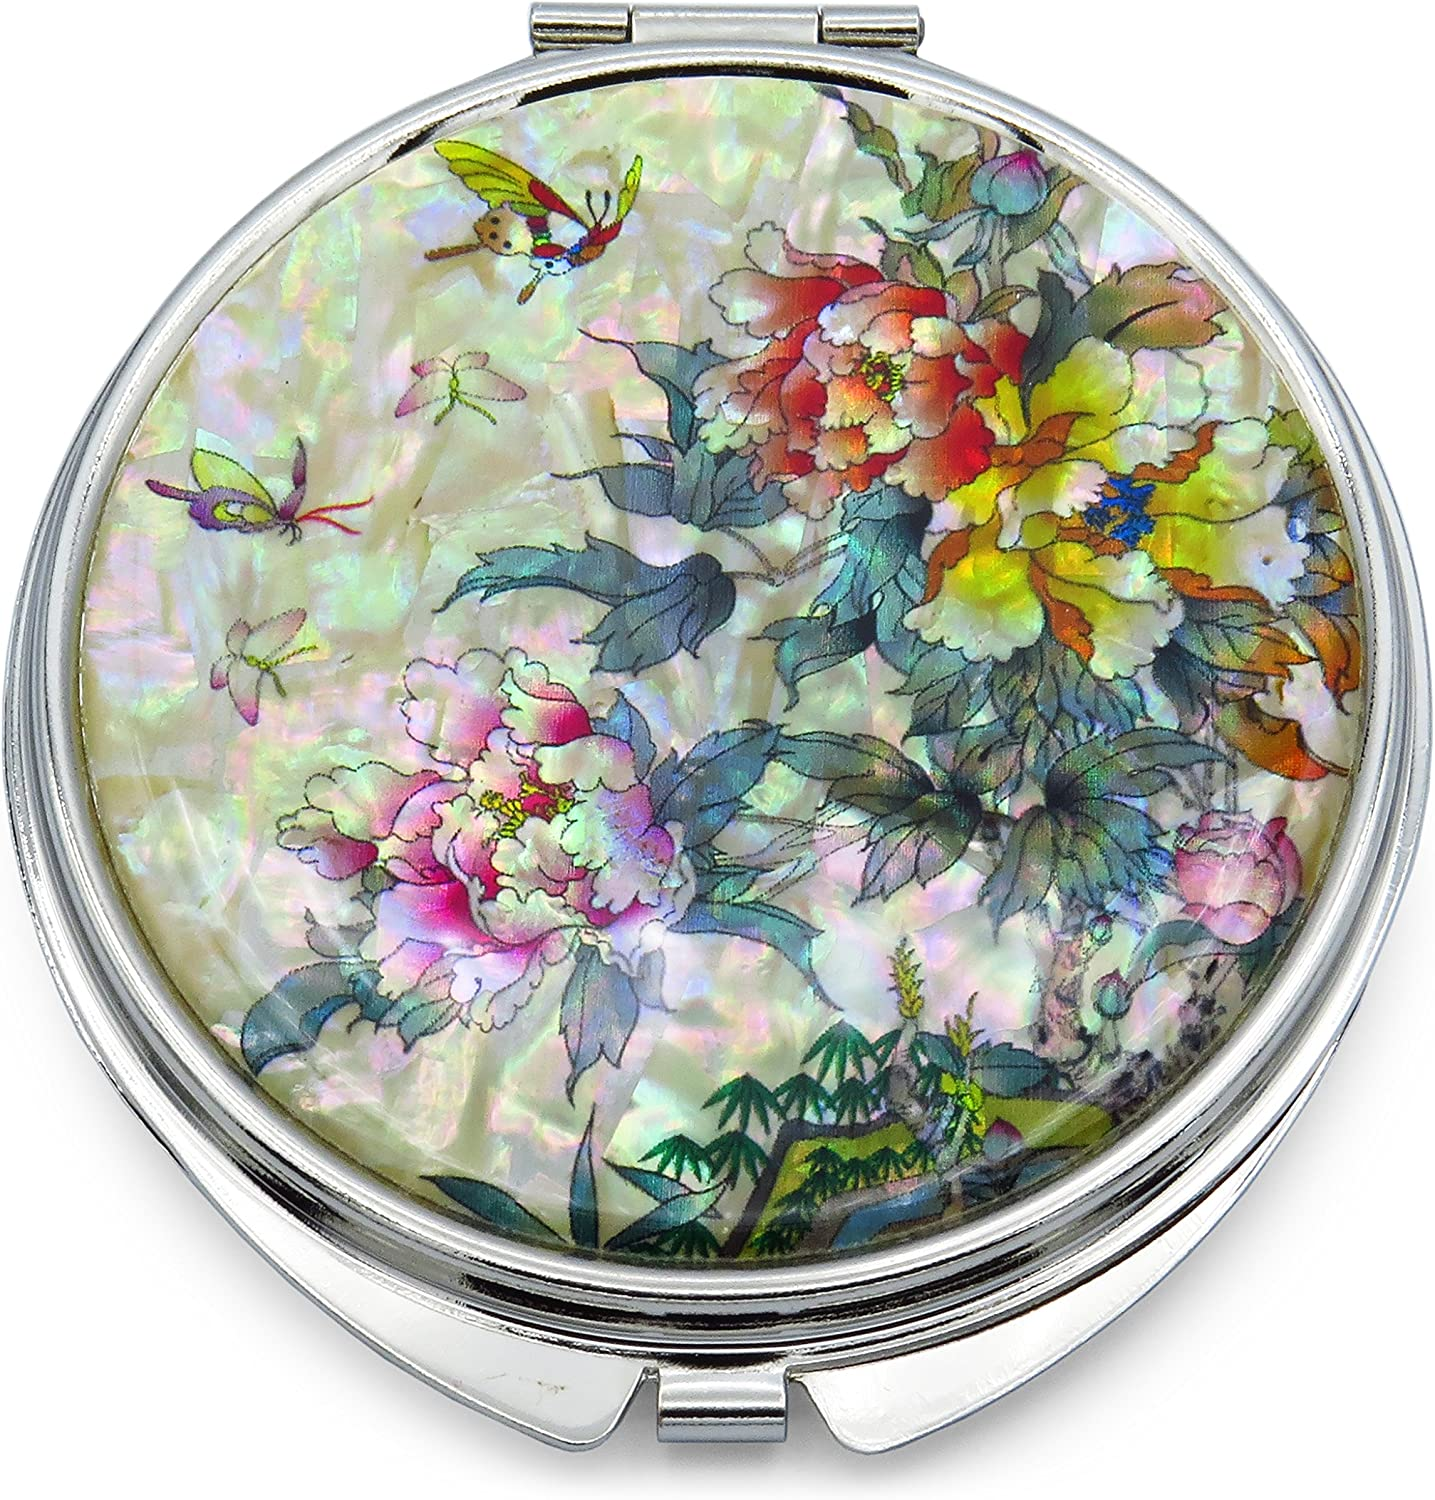 MADDesign Max 66% NEW OFF Mother of Pearl Compact Makeup Magnify Folding Mirror